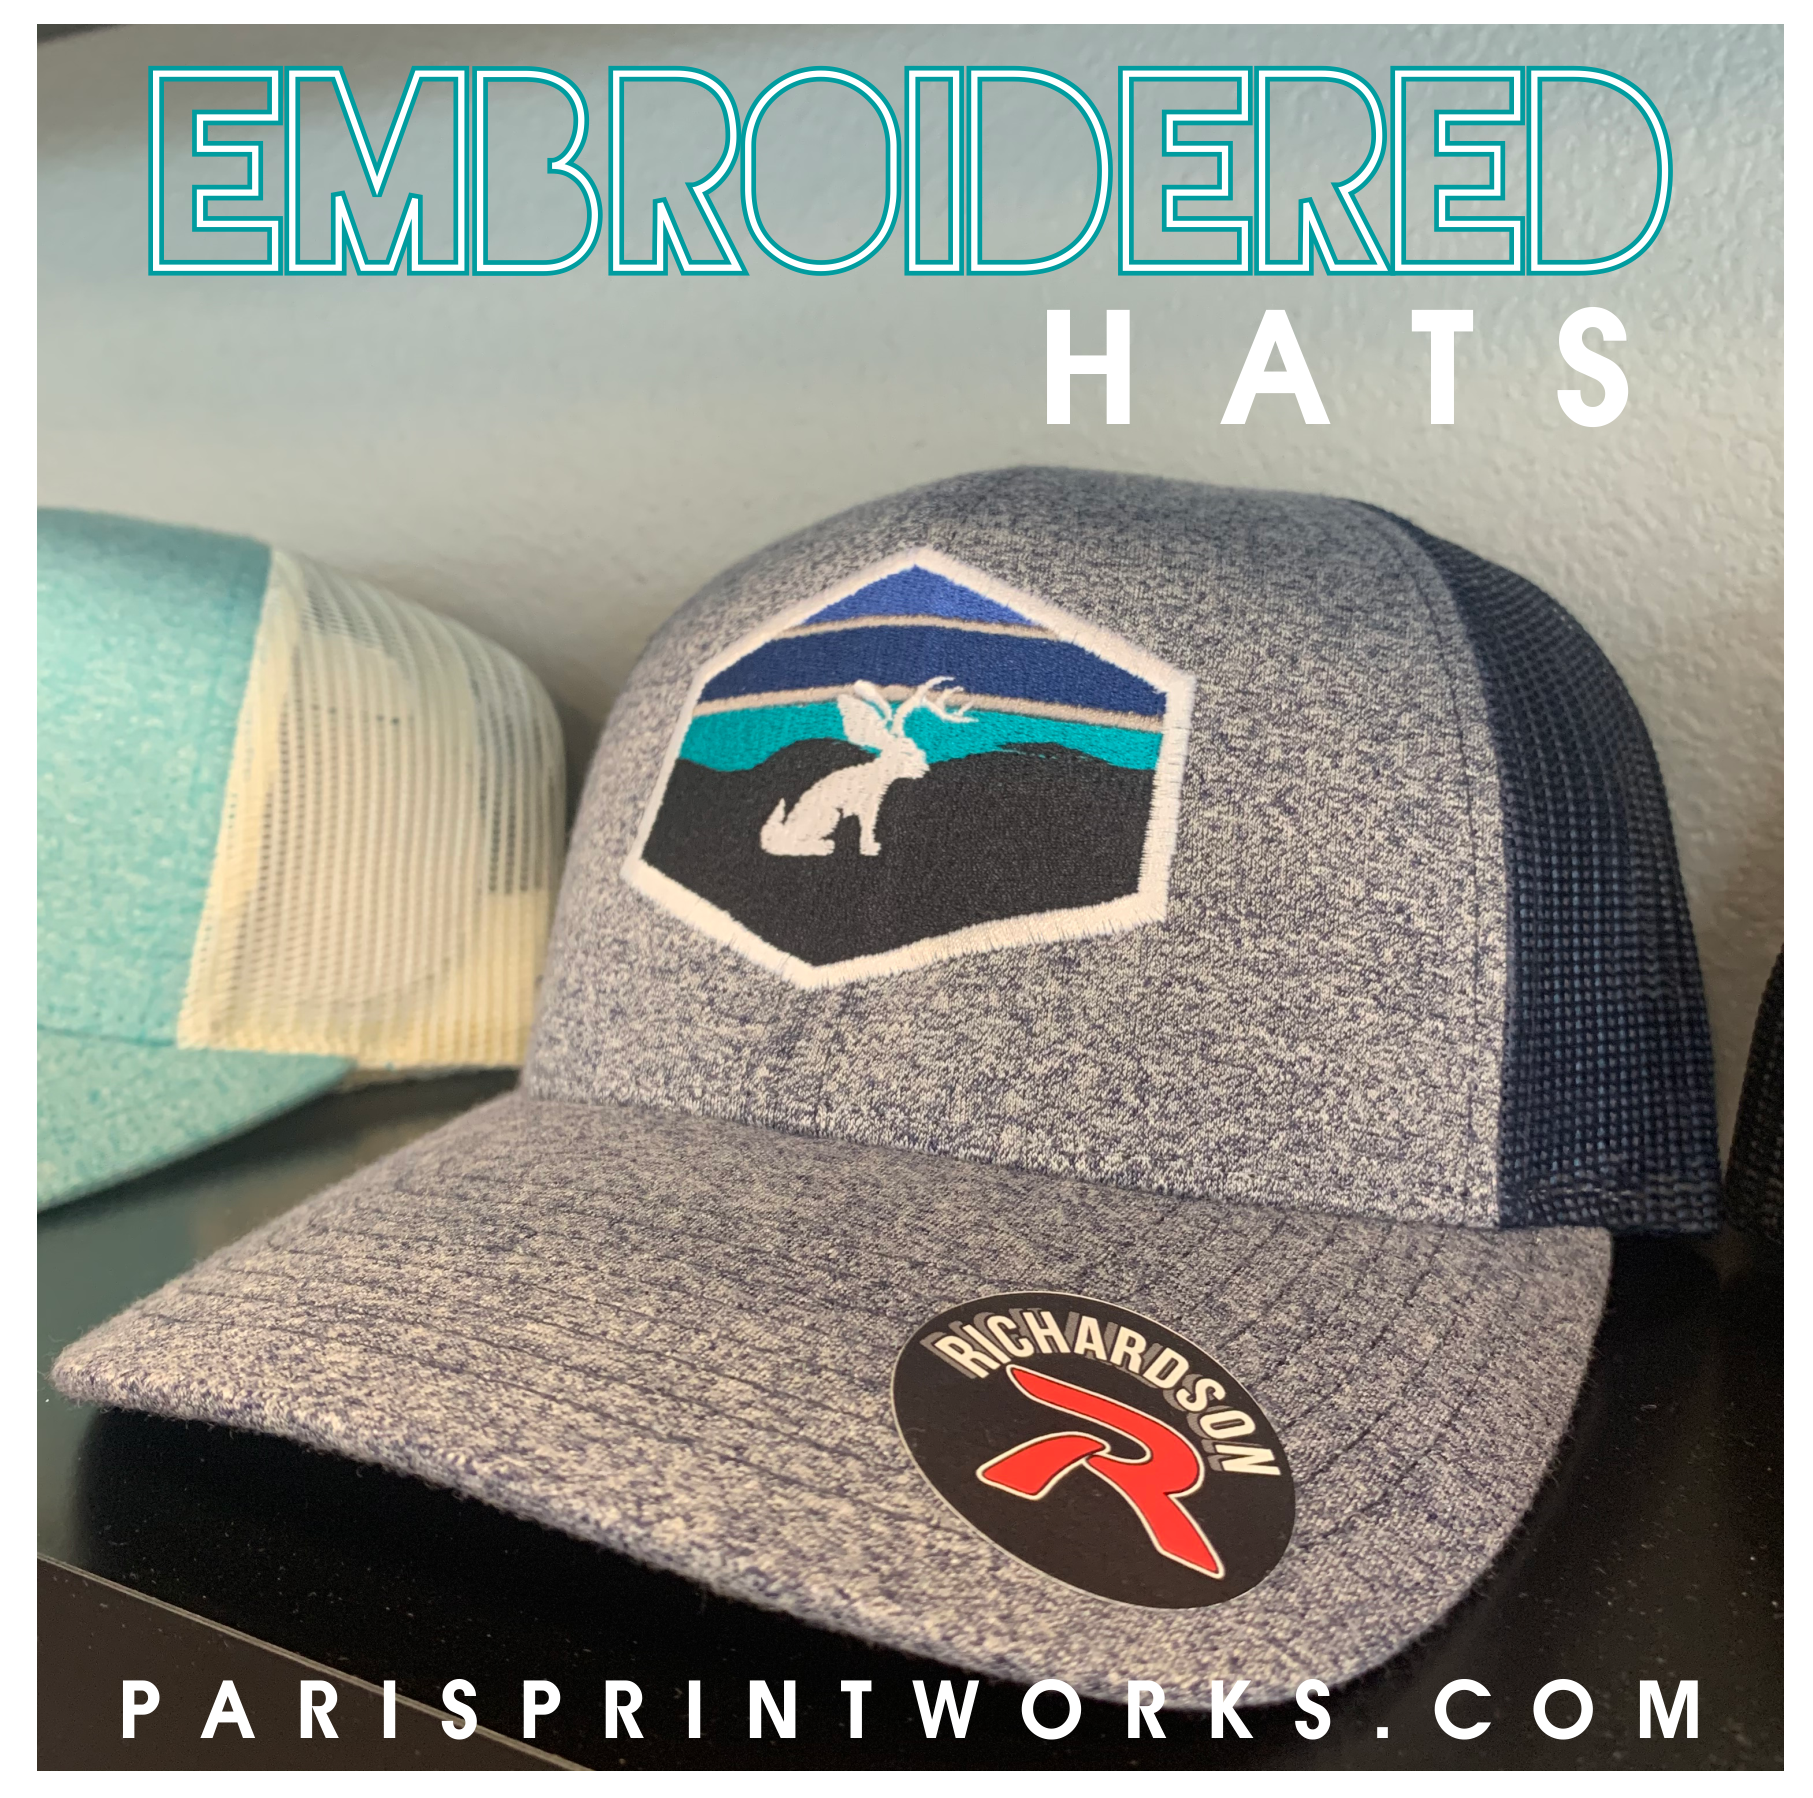 Embroidered Hats Are Perfect For Any Occasion We Have Endless Customization Options At Print Works Visit Our Website Embroidered Hats Embroidered Tshirt Hats